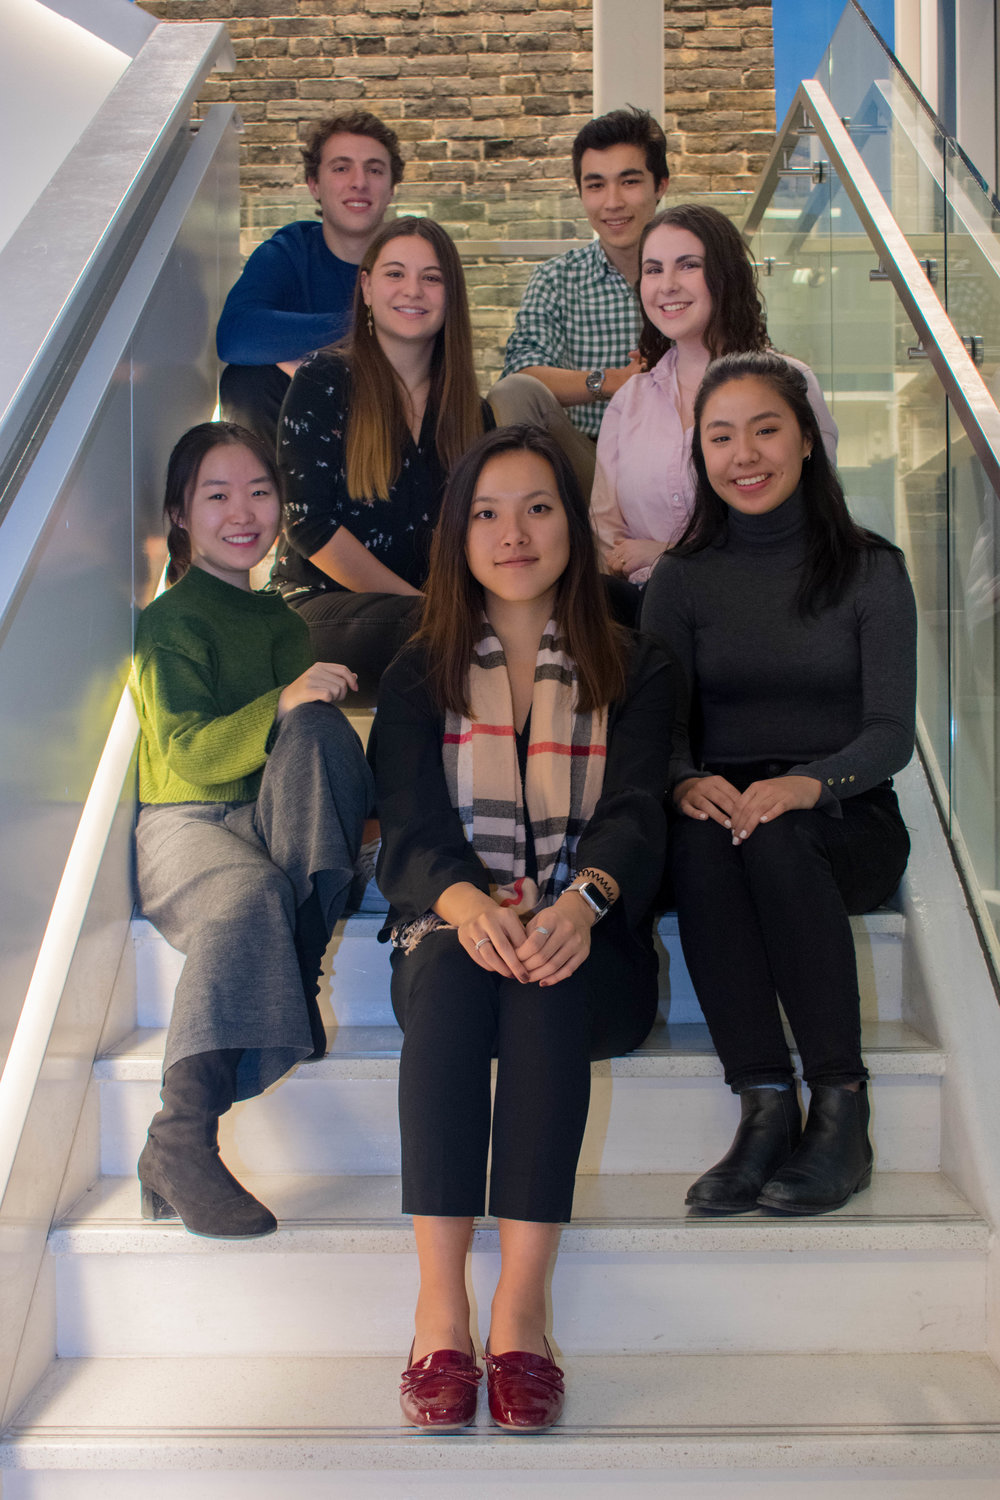 First Year Council (left to right):   Top row: Jacob Lokash, Liam Olsen  Middle row: Maëna Raoux, Maddy Evans  Front row: Min Kwon, Esli Chan,Naomi Shu  Missing: Dalton Liggett, Frank Lee